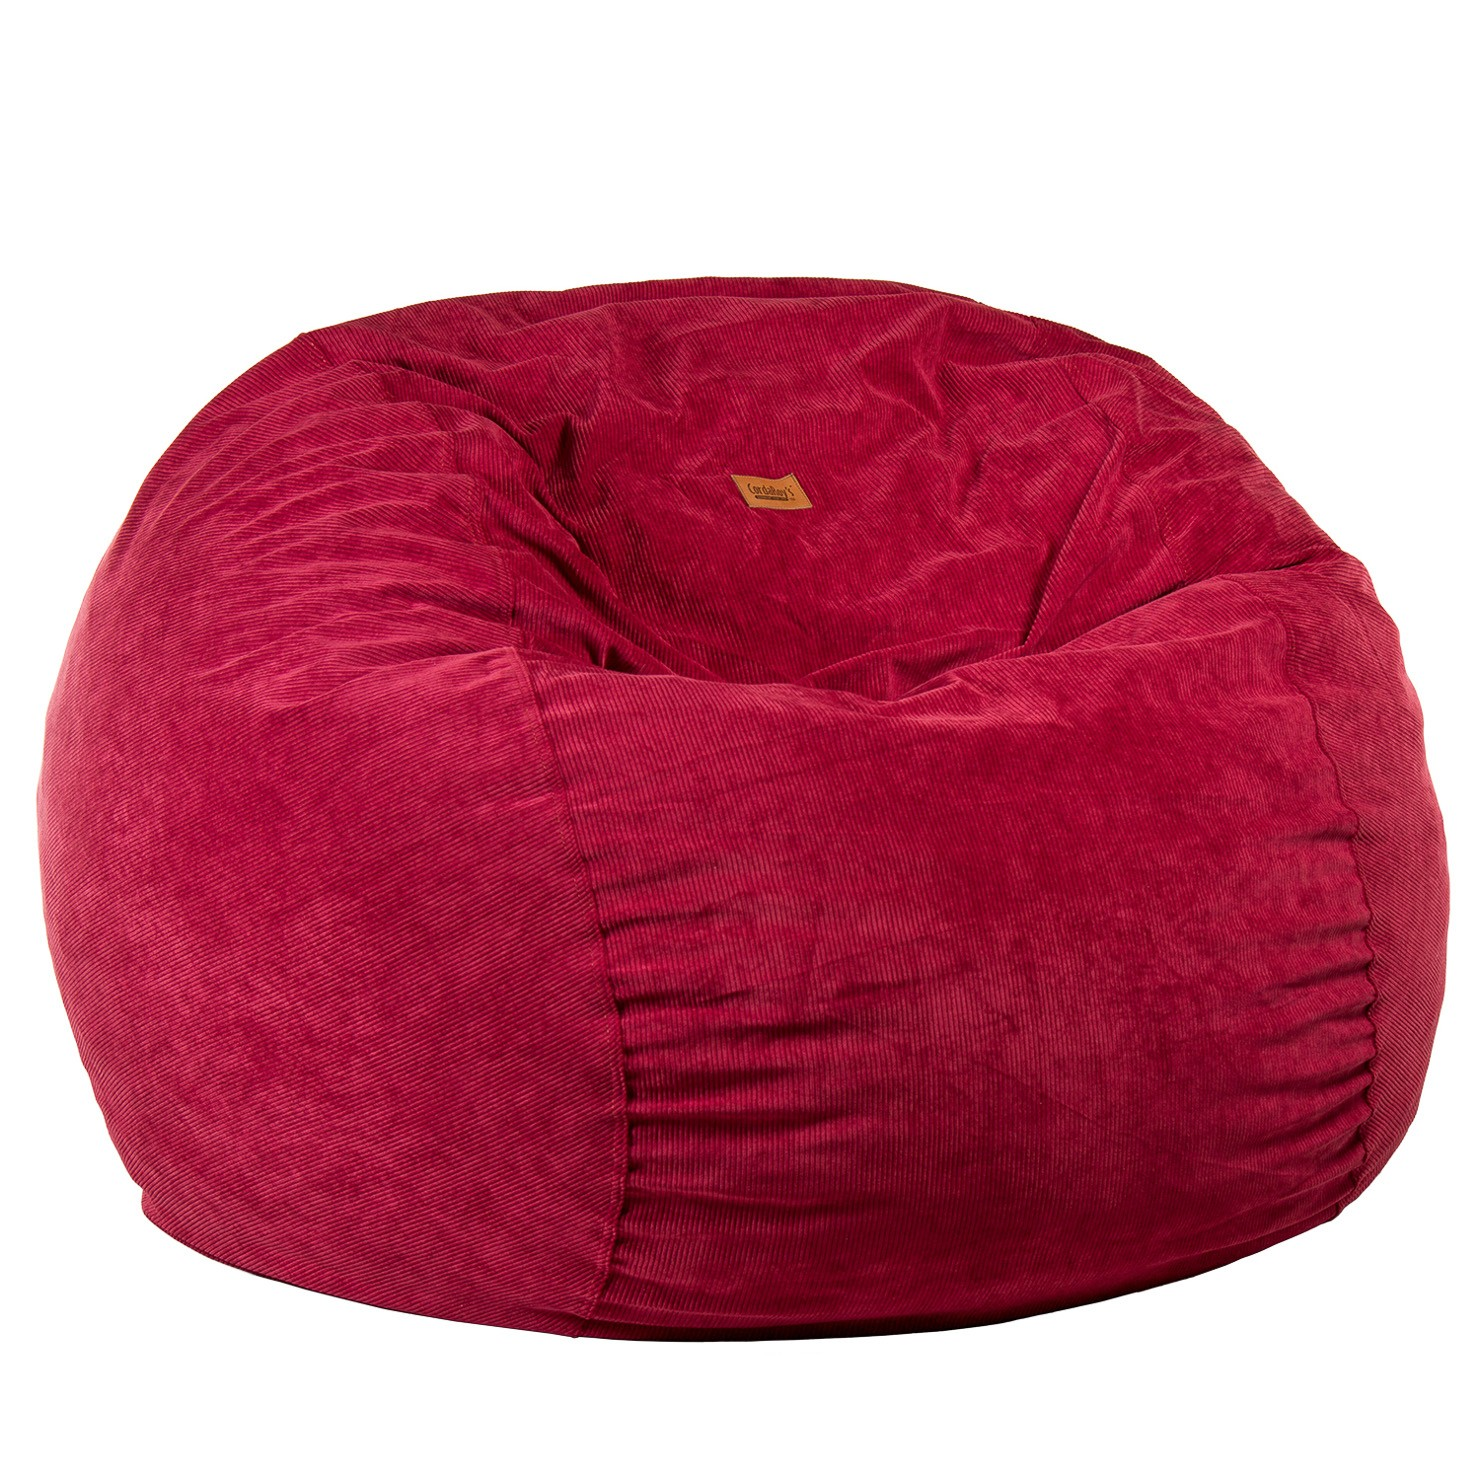 Admirable Full Size Wine Corduroy Bean Bag Converts To A Bed Dailytribune Chair Design For Home Dailytribuneorg